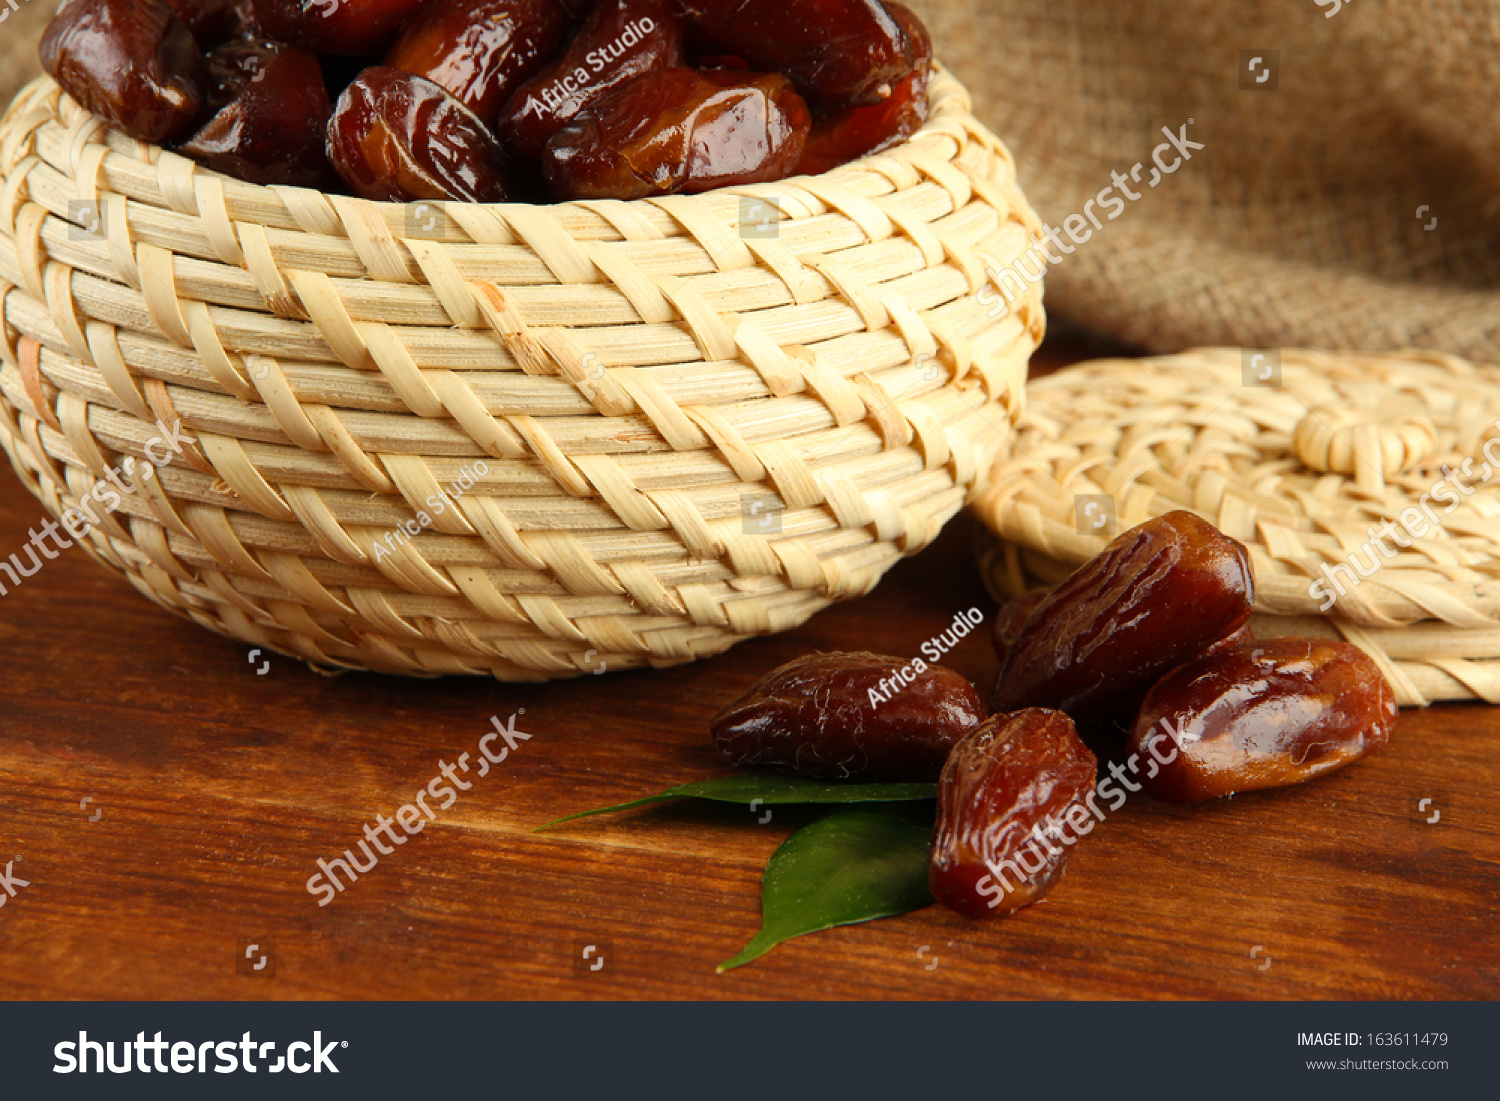 Dried Dates Basket On Table On Stock Photo 163611479 ...